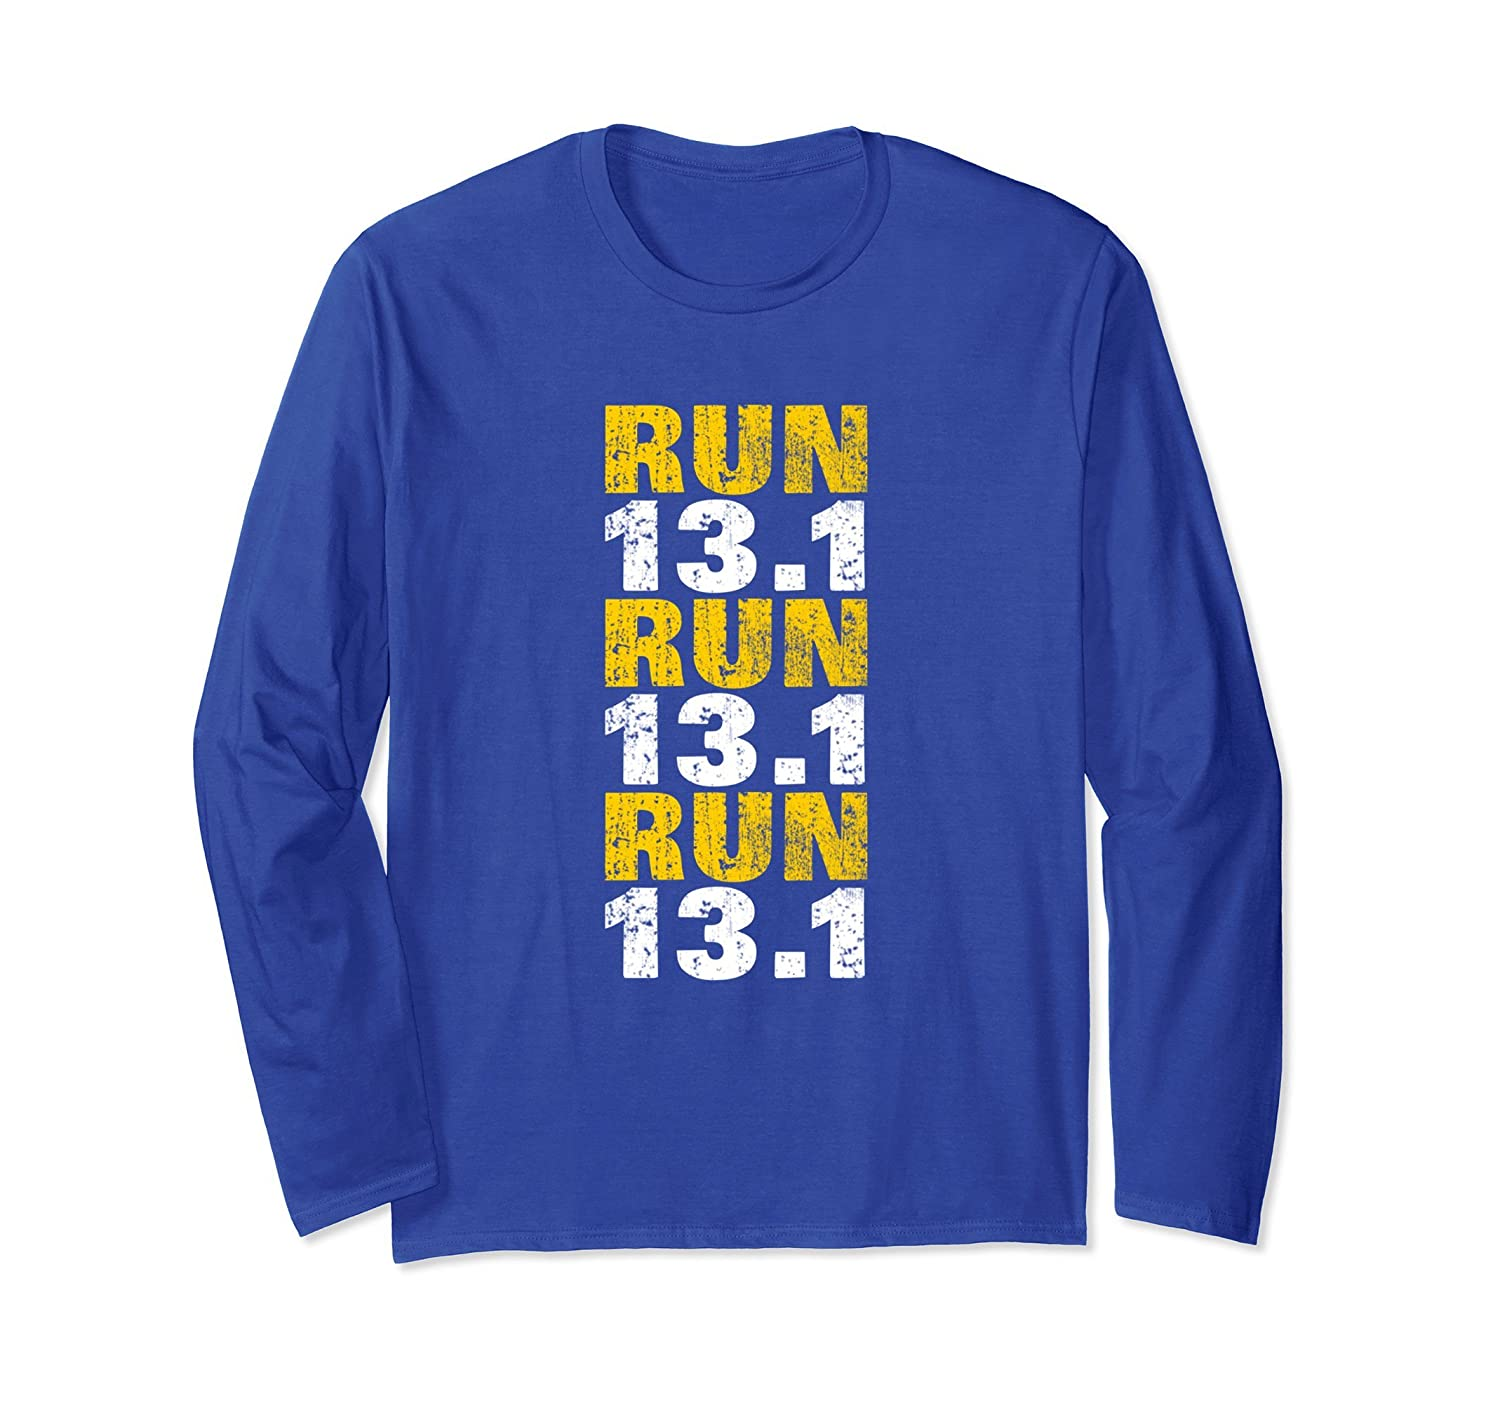 13.1 Long Sleeve Shirt Women Half Marathon Running Shirt-alottee gift